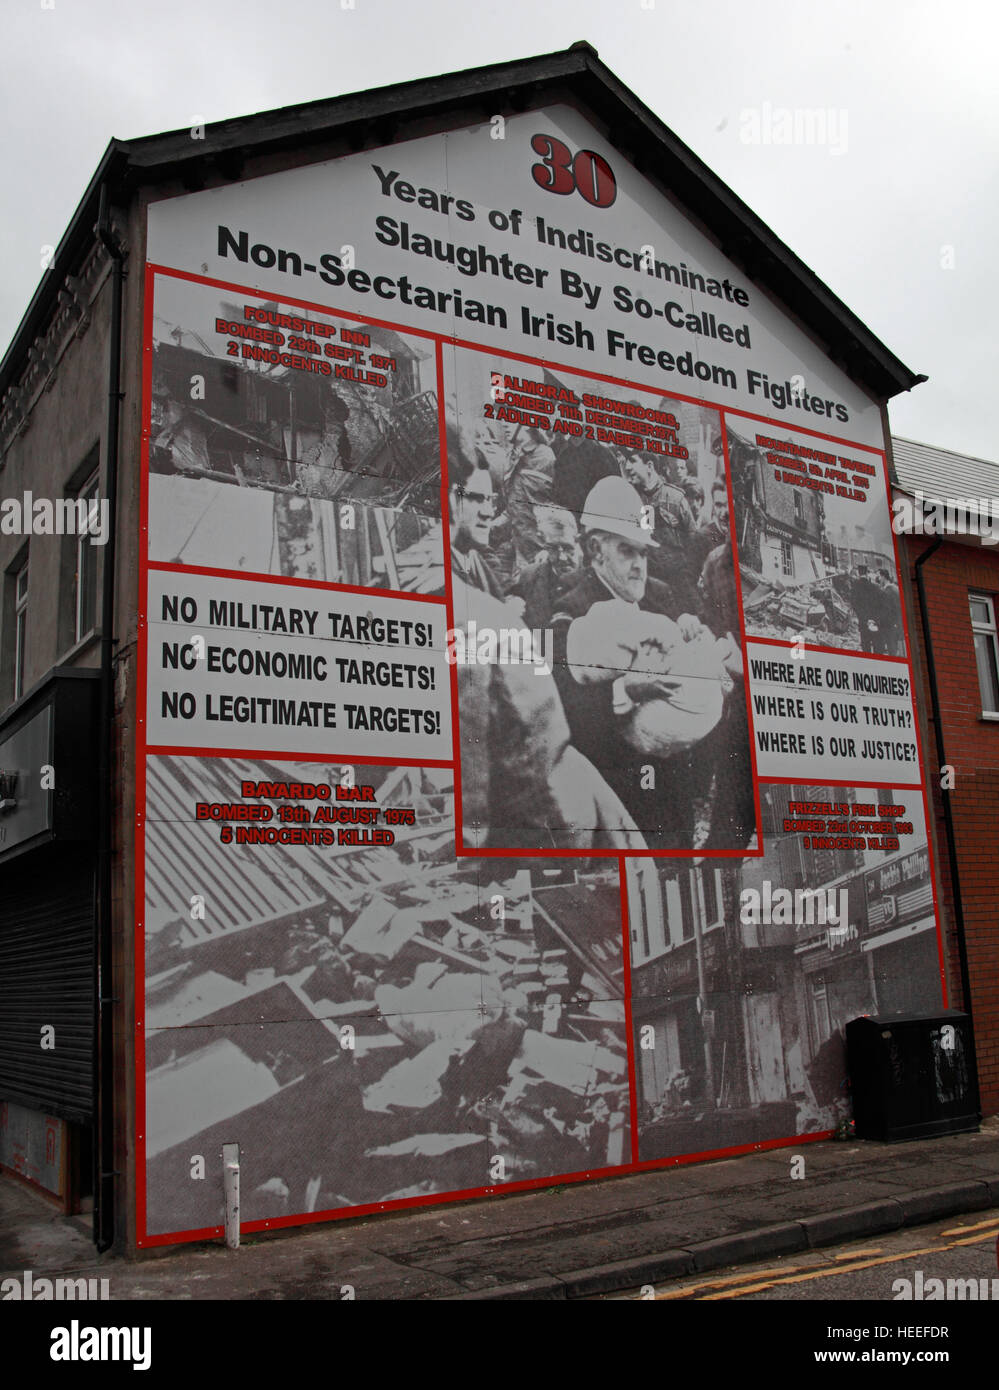 Mural,art,British,Union,wall,walls,gable end,gable,end,Northern,Irish,Republican,violence,para,military,paramilitary,fallen,Martyrs,martyr,street,rd,road,painting,painted,symbolism,Loyalist,culture,history,community,Bar,Aberdeen St,attack slaughter by IRA Brendan McFarlane,orange,GoTonySmith,@HotpixUK,Tony,Smith,UK,GB,Great,Britain,United,Kingdom,Irish,British,Ireland,problem,with,problem with,issue with,NI,Northern,Northern Ireland,Belfast,City,Centre,Art,Artists,the,troubles,The Troubles,Good Friday Agreement,Peace,honour,painting,wall,walls,tribute,republicanism,Fight,Justice,West,Beal,feirste,martyrs,social,tour,tourism,tourists,urban,six,counties,6,backdrop,county,Antrim,Shankill,Rd,Road,Royal,Royalist,Loyalist,Belfast streets,Buy Pictures of,Buy Images Of,Images of,Stock Images,Tony Smith,United Kingdom,Great Britain,British Isles